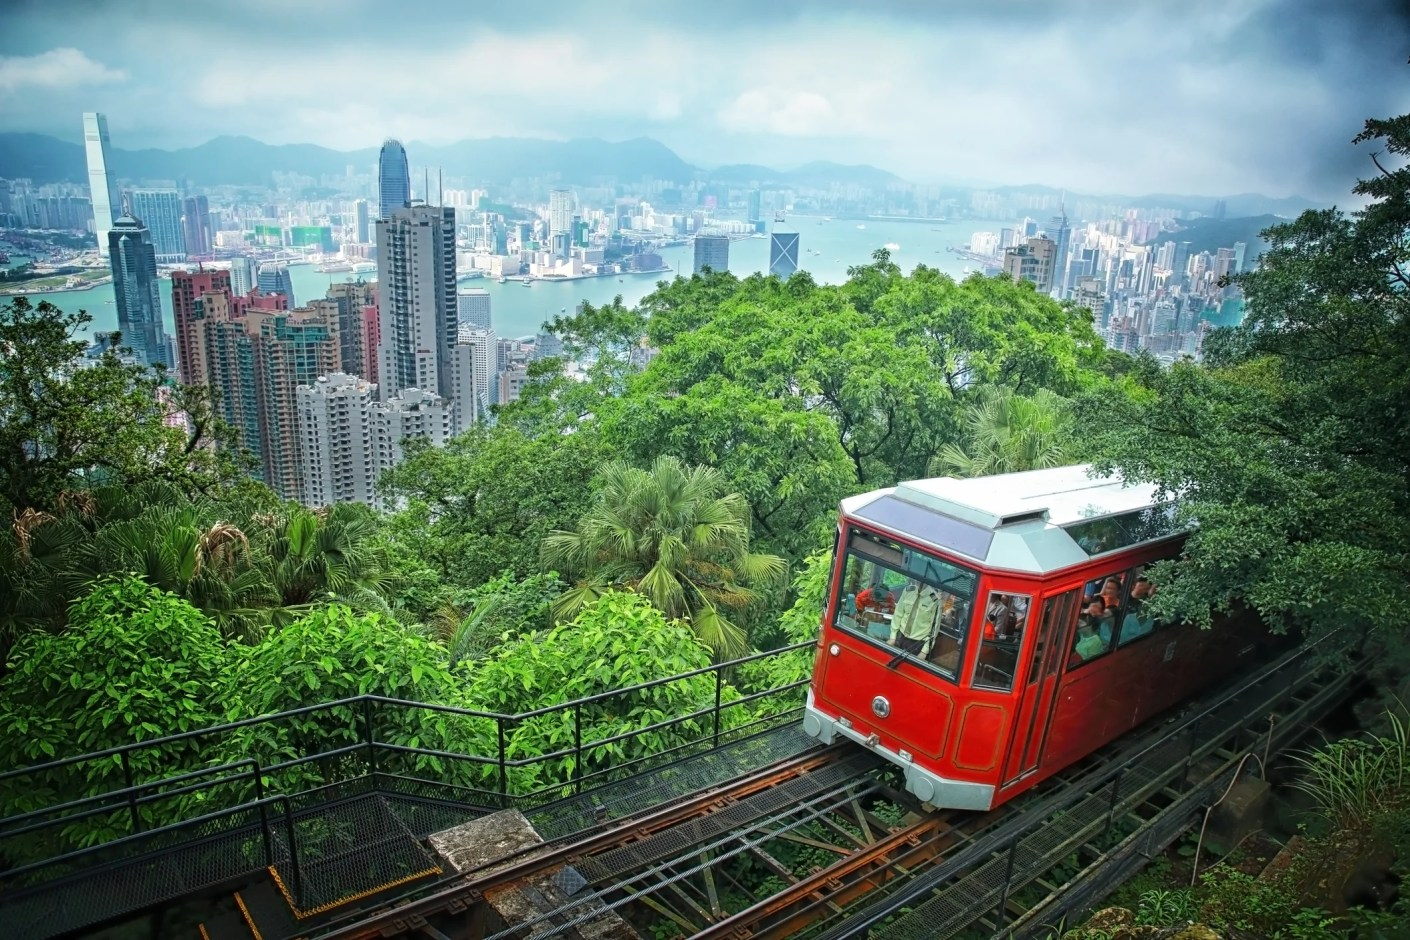 Looking down on Hong Kong from the Peak Tram. (Photo by phaitoons / Getty Images)